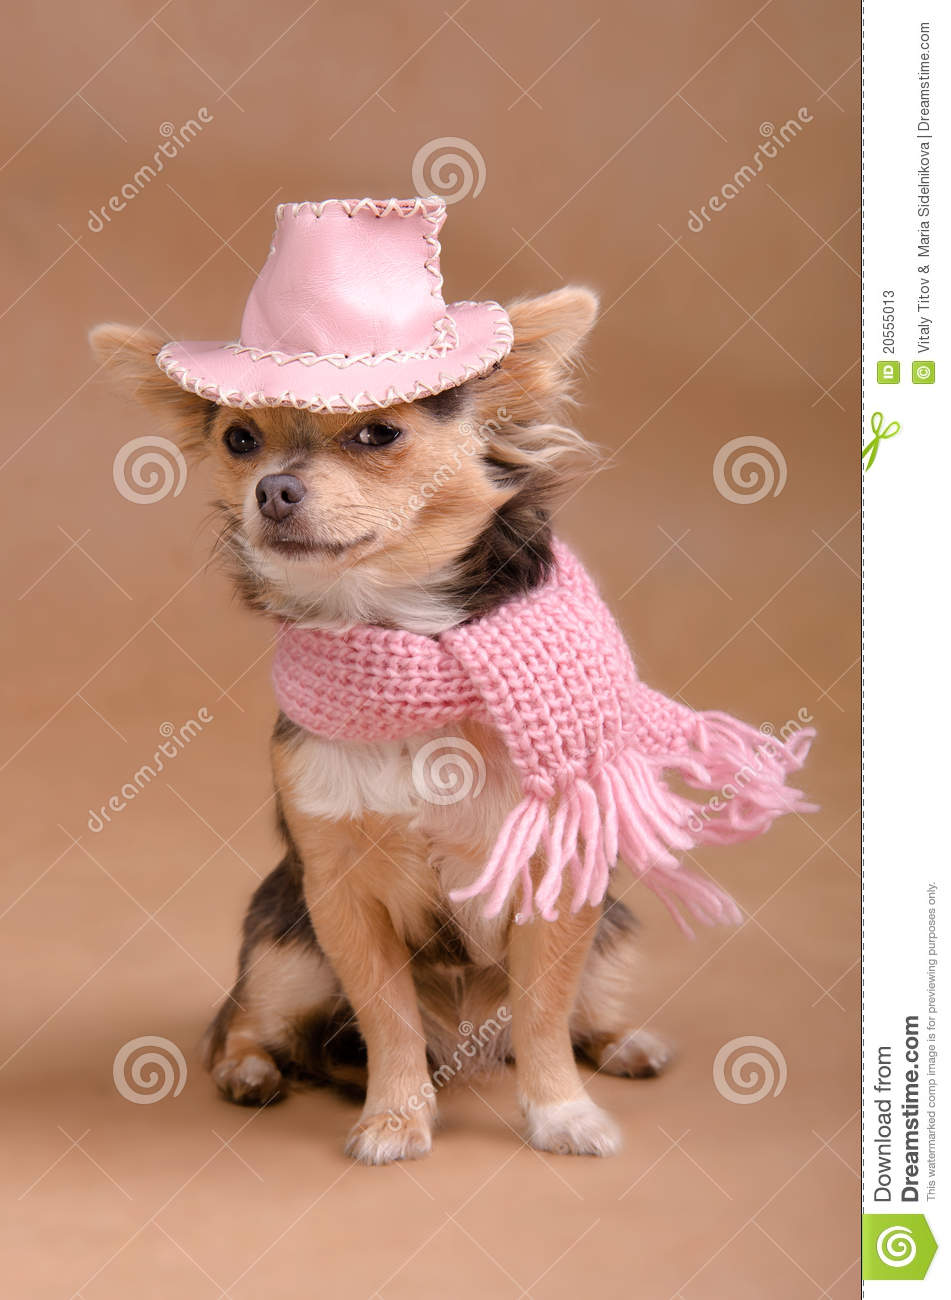 6ac6694fa3940 Chihuahua Puppy With Pink Hat And Scarf Stock Image - Image of ...